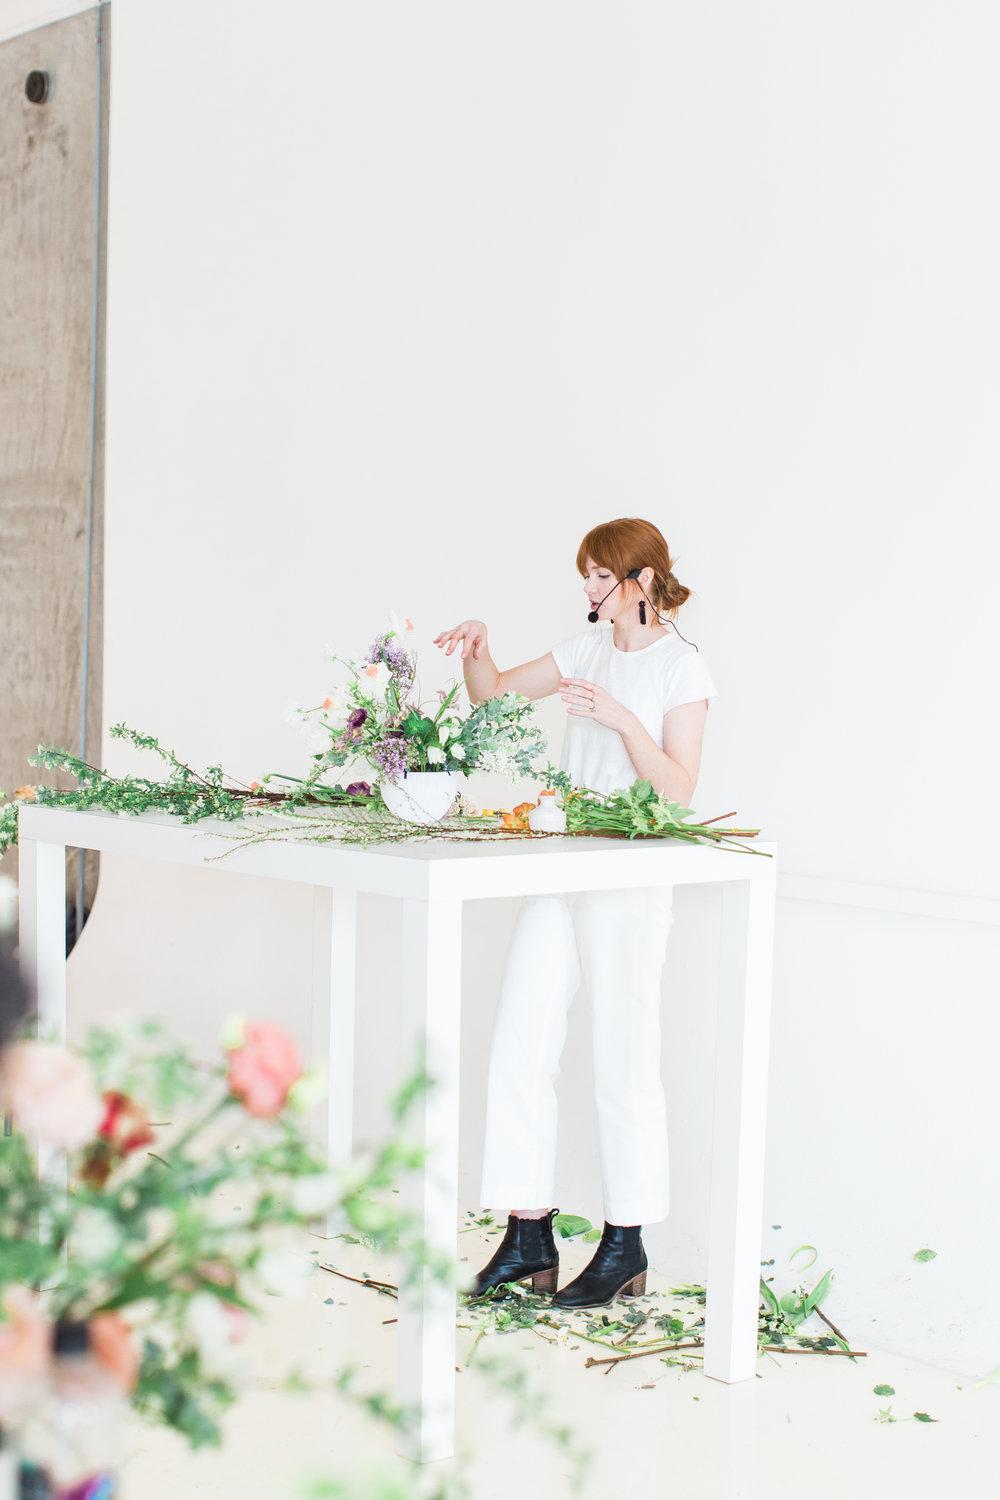 Kaylee is currently traveling the country teaching workshops with the floral wholesaler, Mayesh. To check out workshop dates & locations, click here. She also offers an online bouquet-making class on Skillshare. You can learn from Kaylee on Skillshare, here.  -